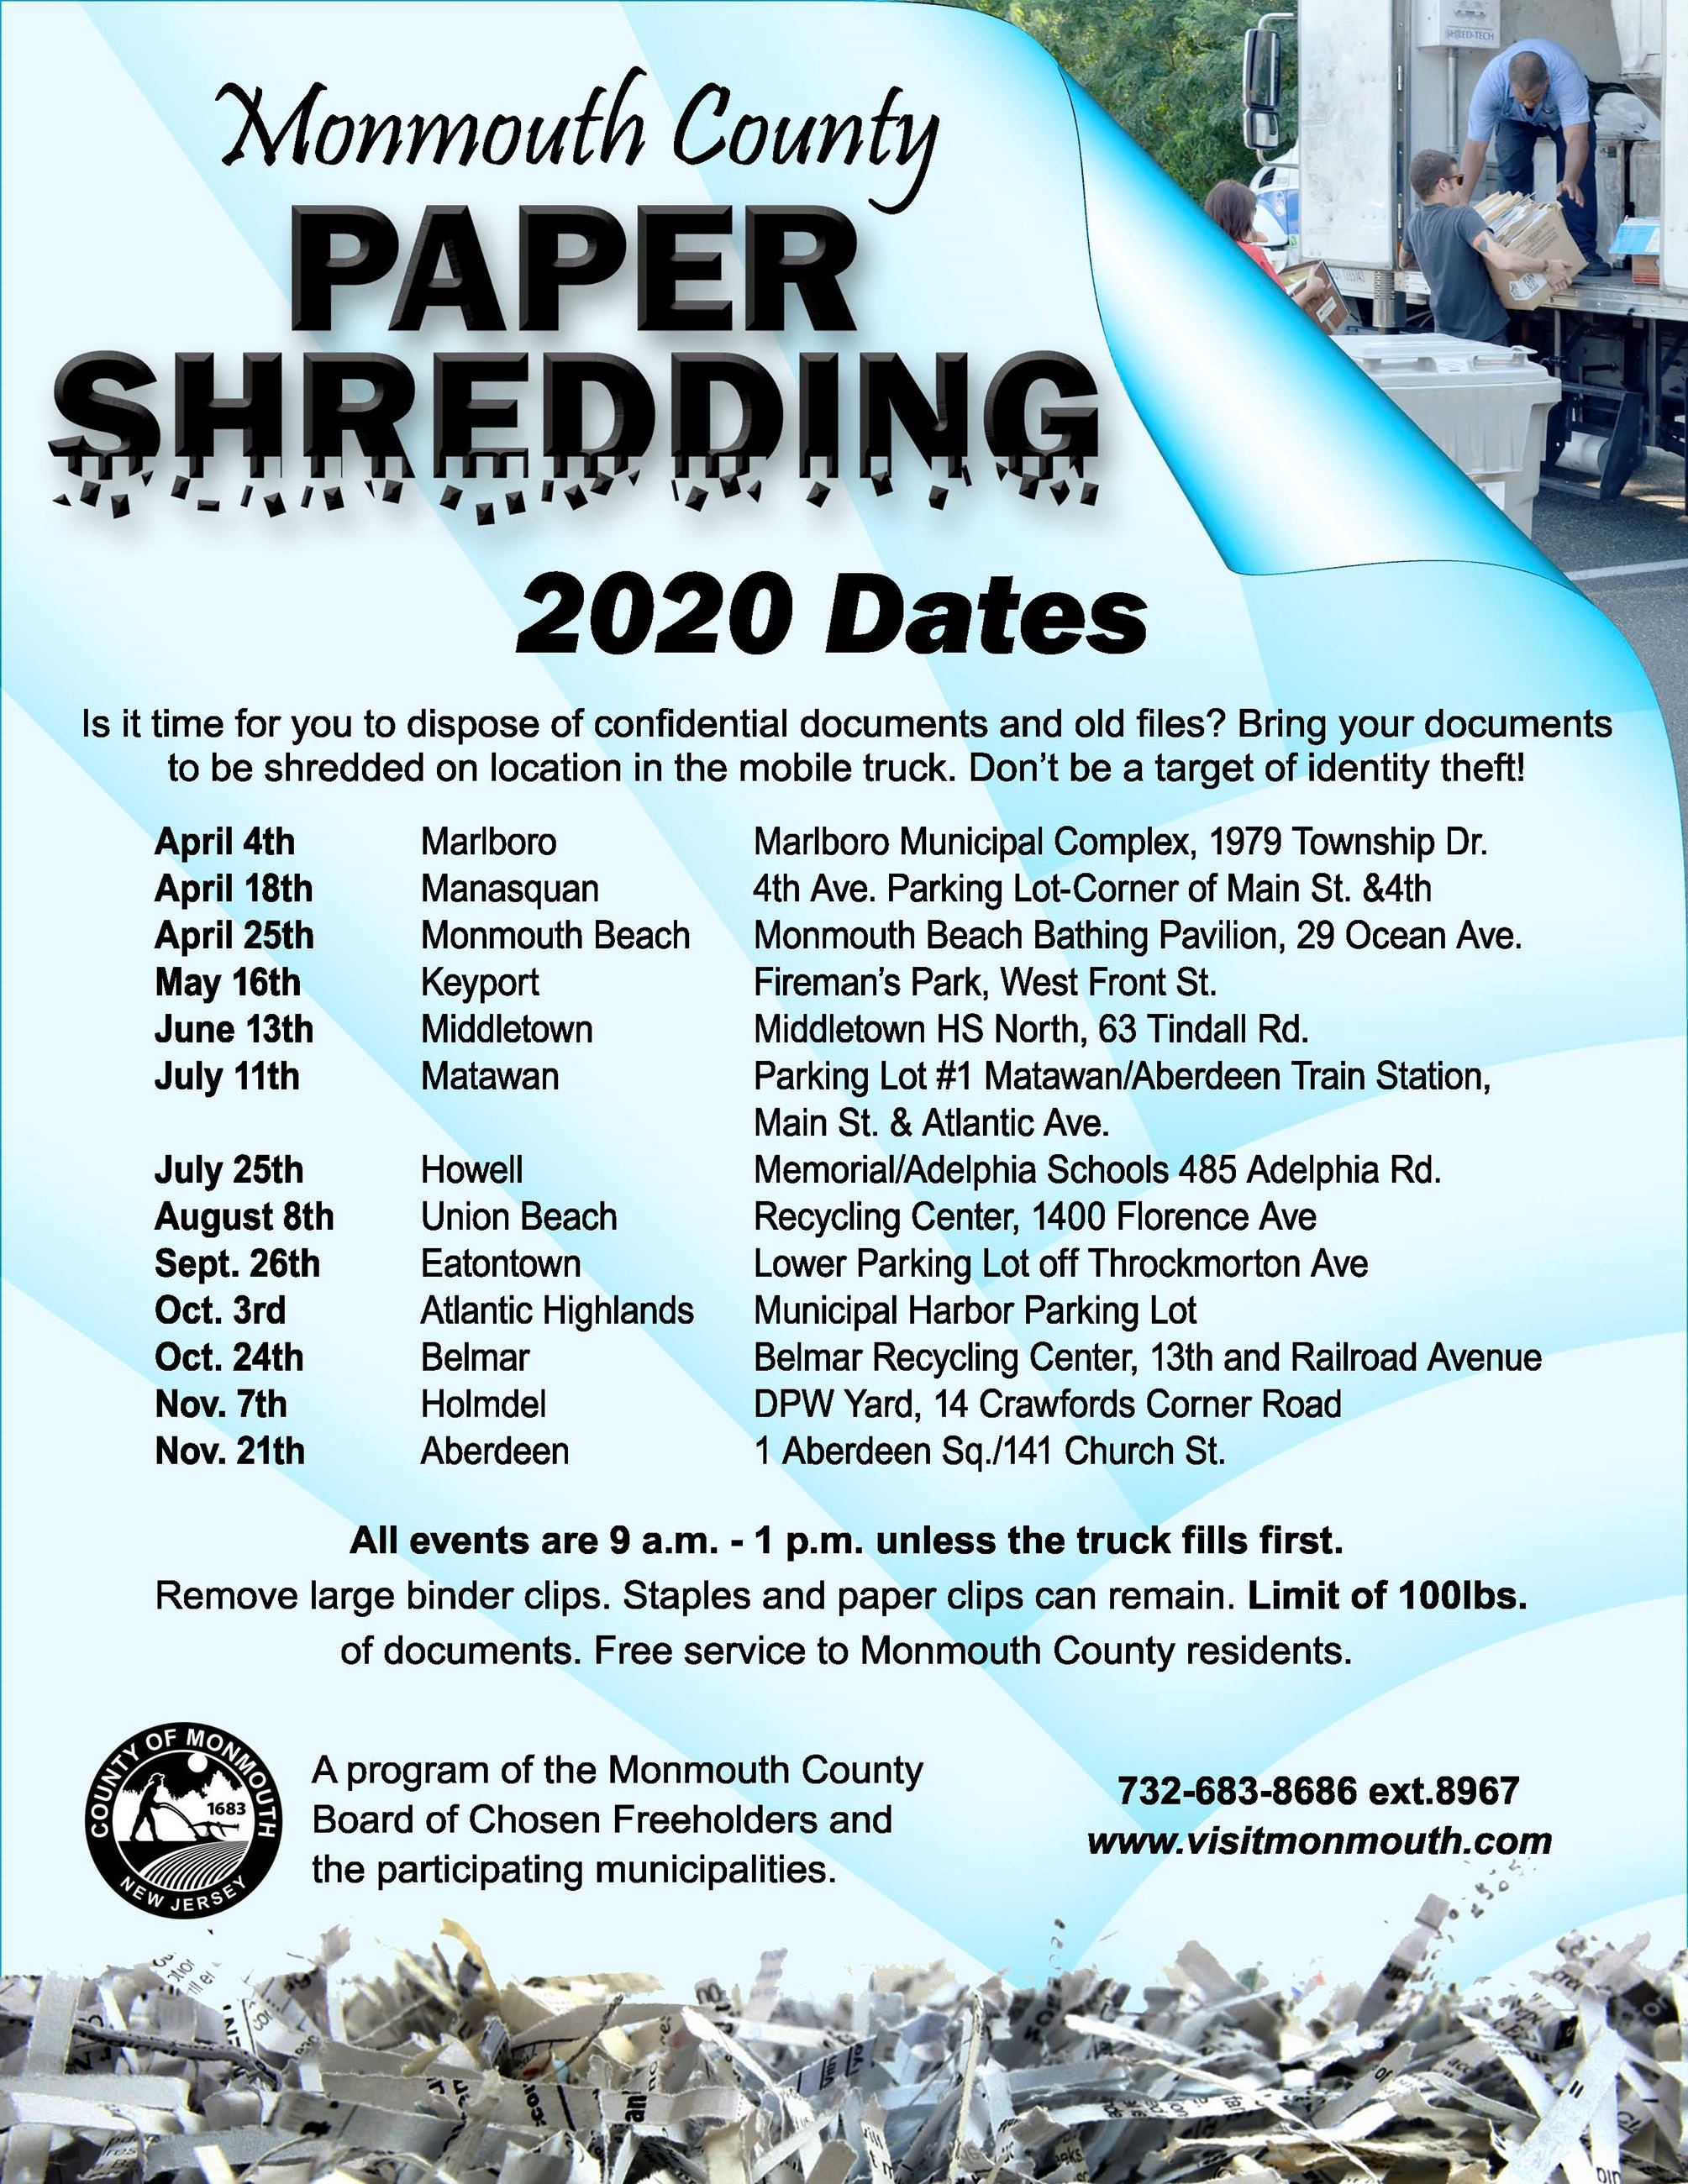 2020 Monmouth County Paper Shredding Dates